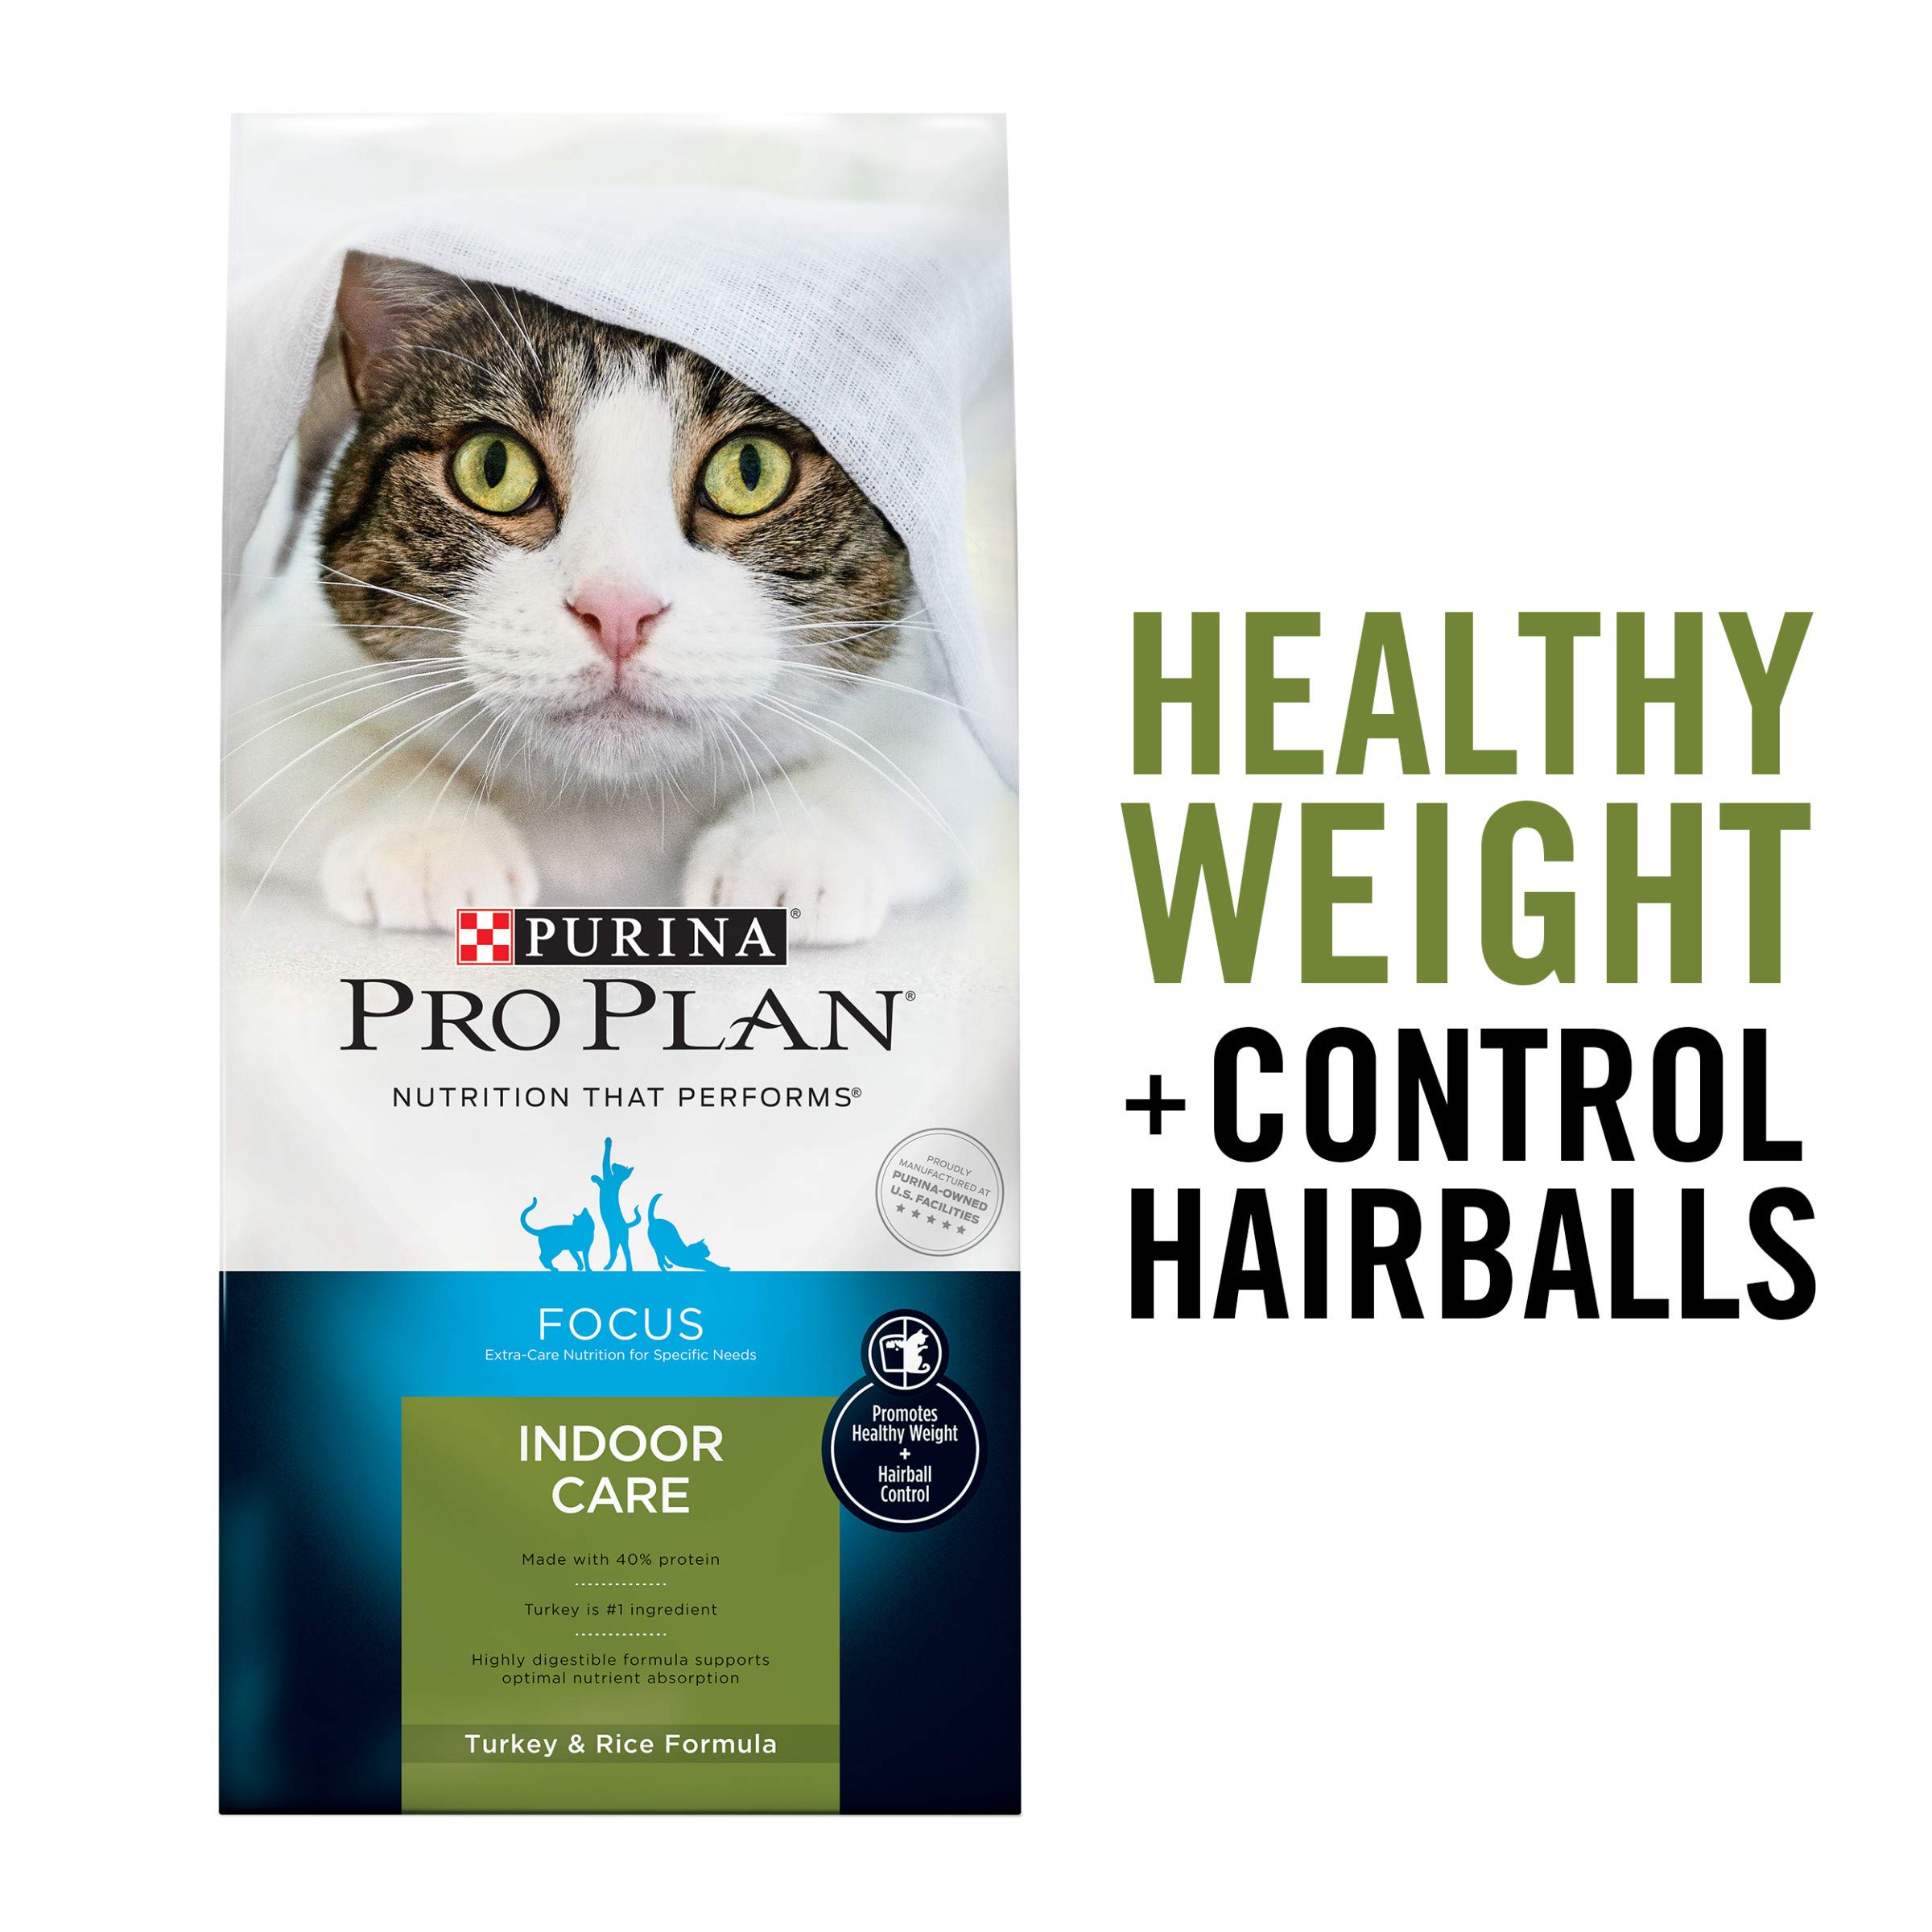 Purina Pro Plan Hairball, Healthy Weight, Indoor Dry Cat Food, FOCUS Indoor Care Turkey & Rice Formula - 16 lb. Bag by PURINA Pro Plan